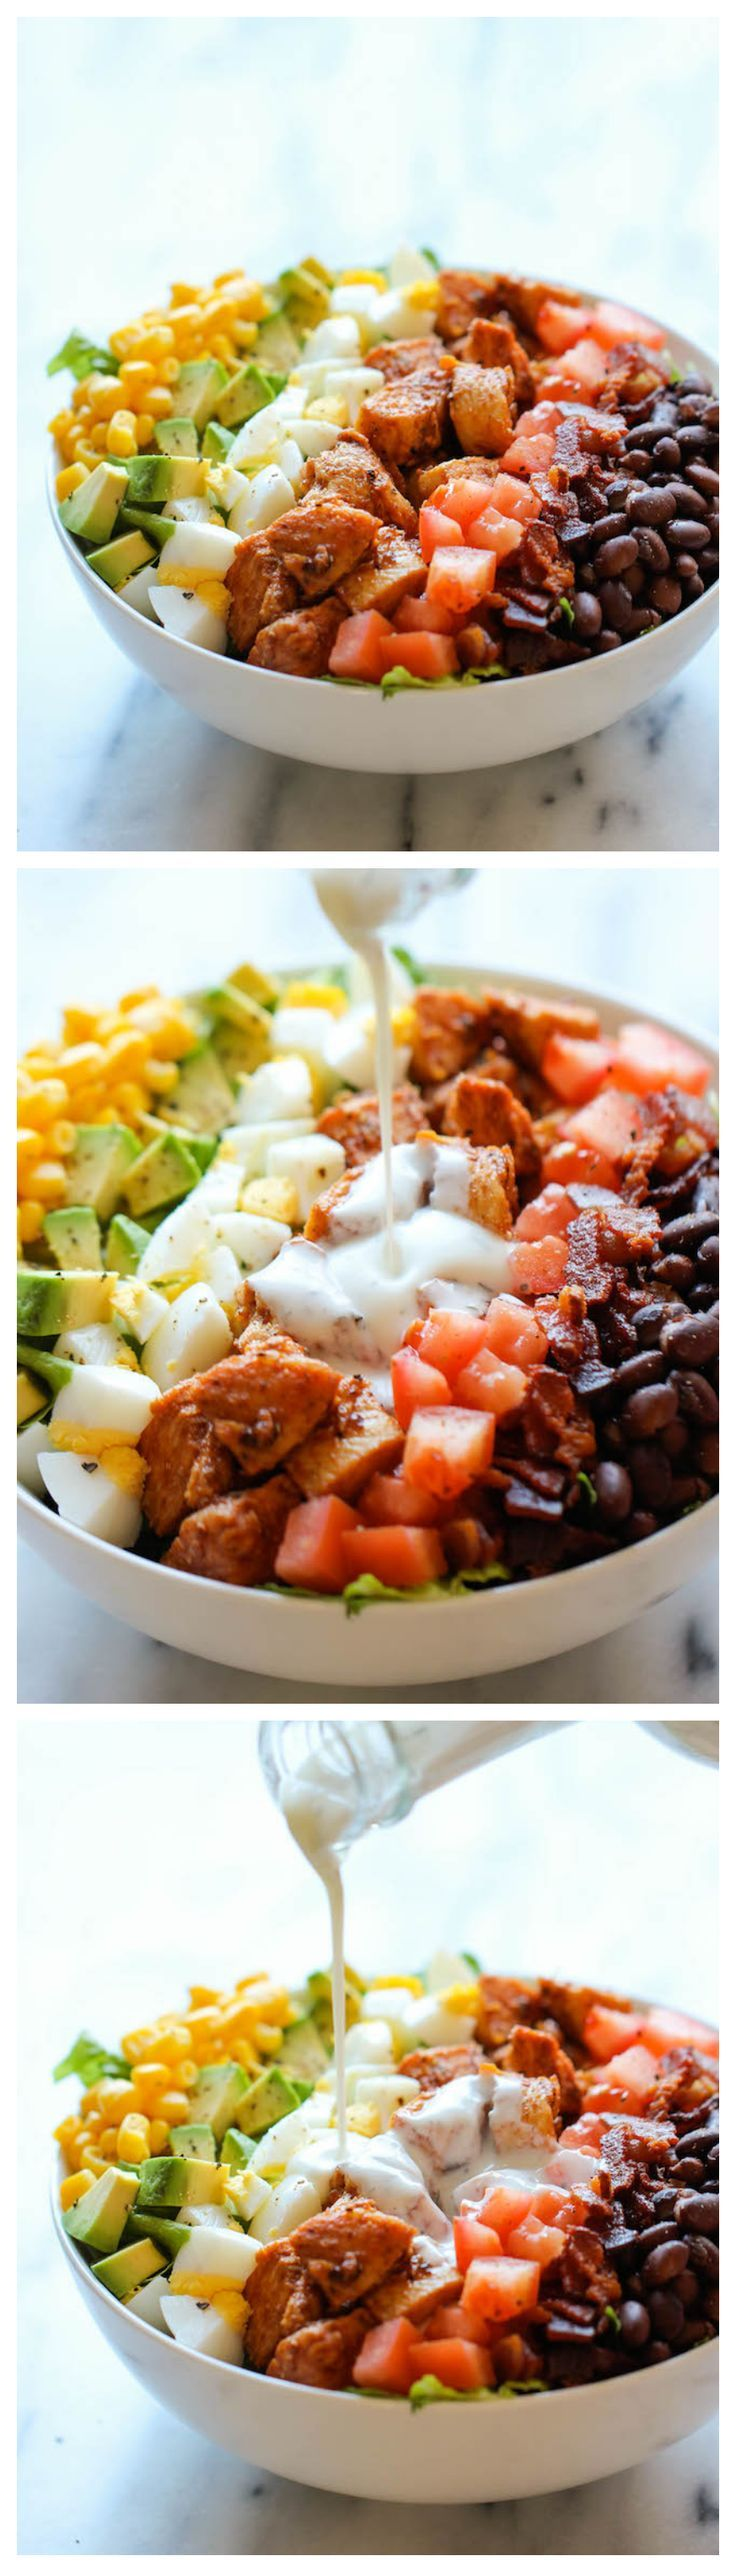 BBQ Chicken Cobb Salad - #EGGS - Healthy, hearty, quick and easy with an incredibly creamy buttermilk ranch dressing that is absolutely to die for!